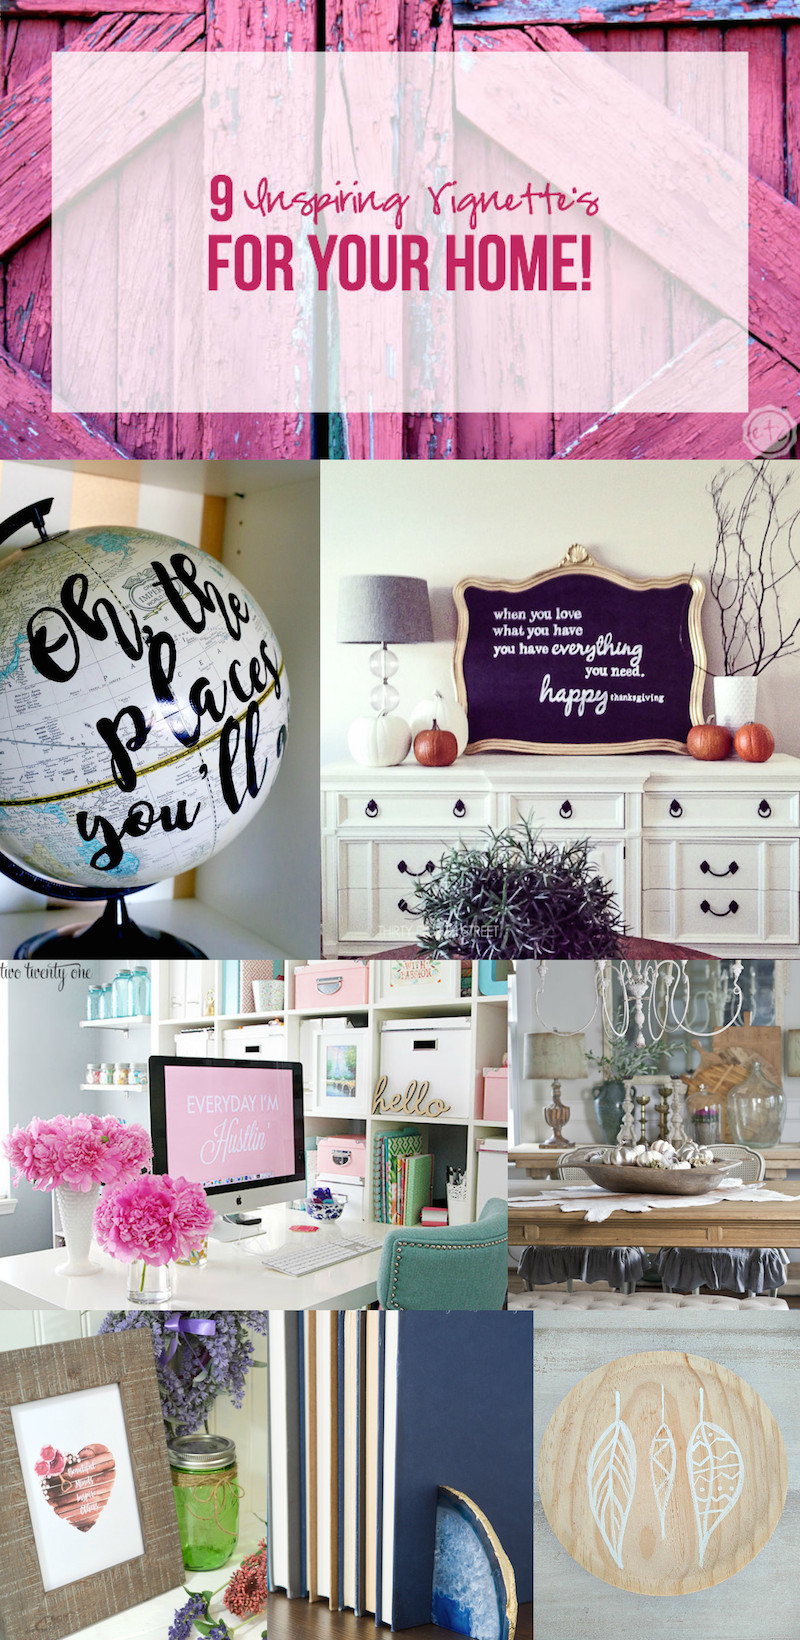 9 Inspiring Vignette's for YOUR Home!